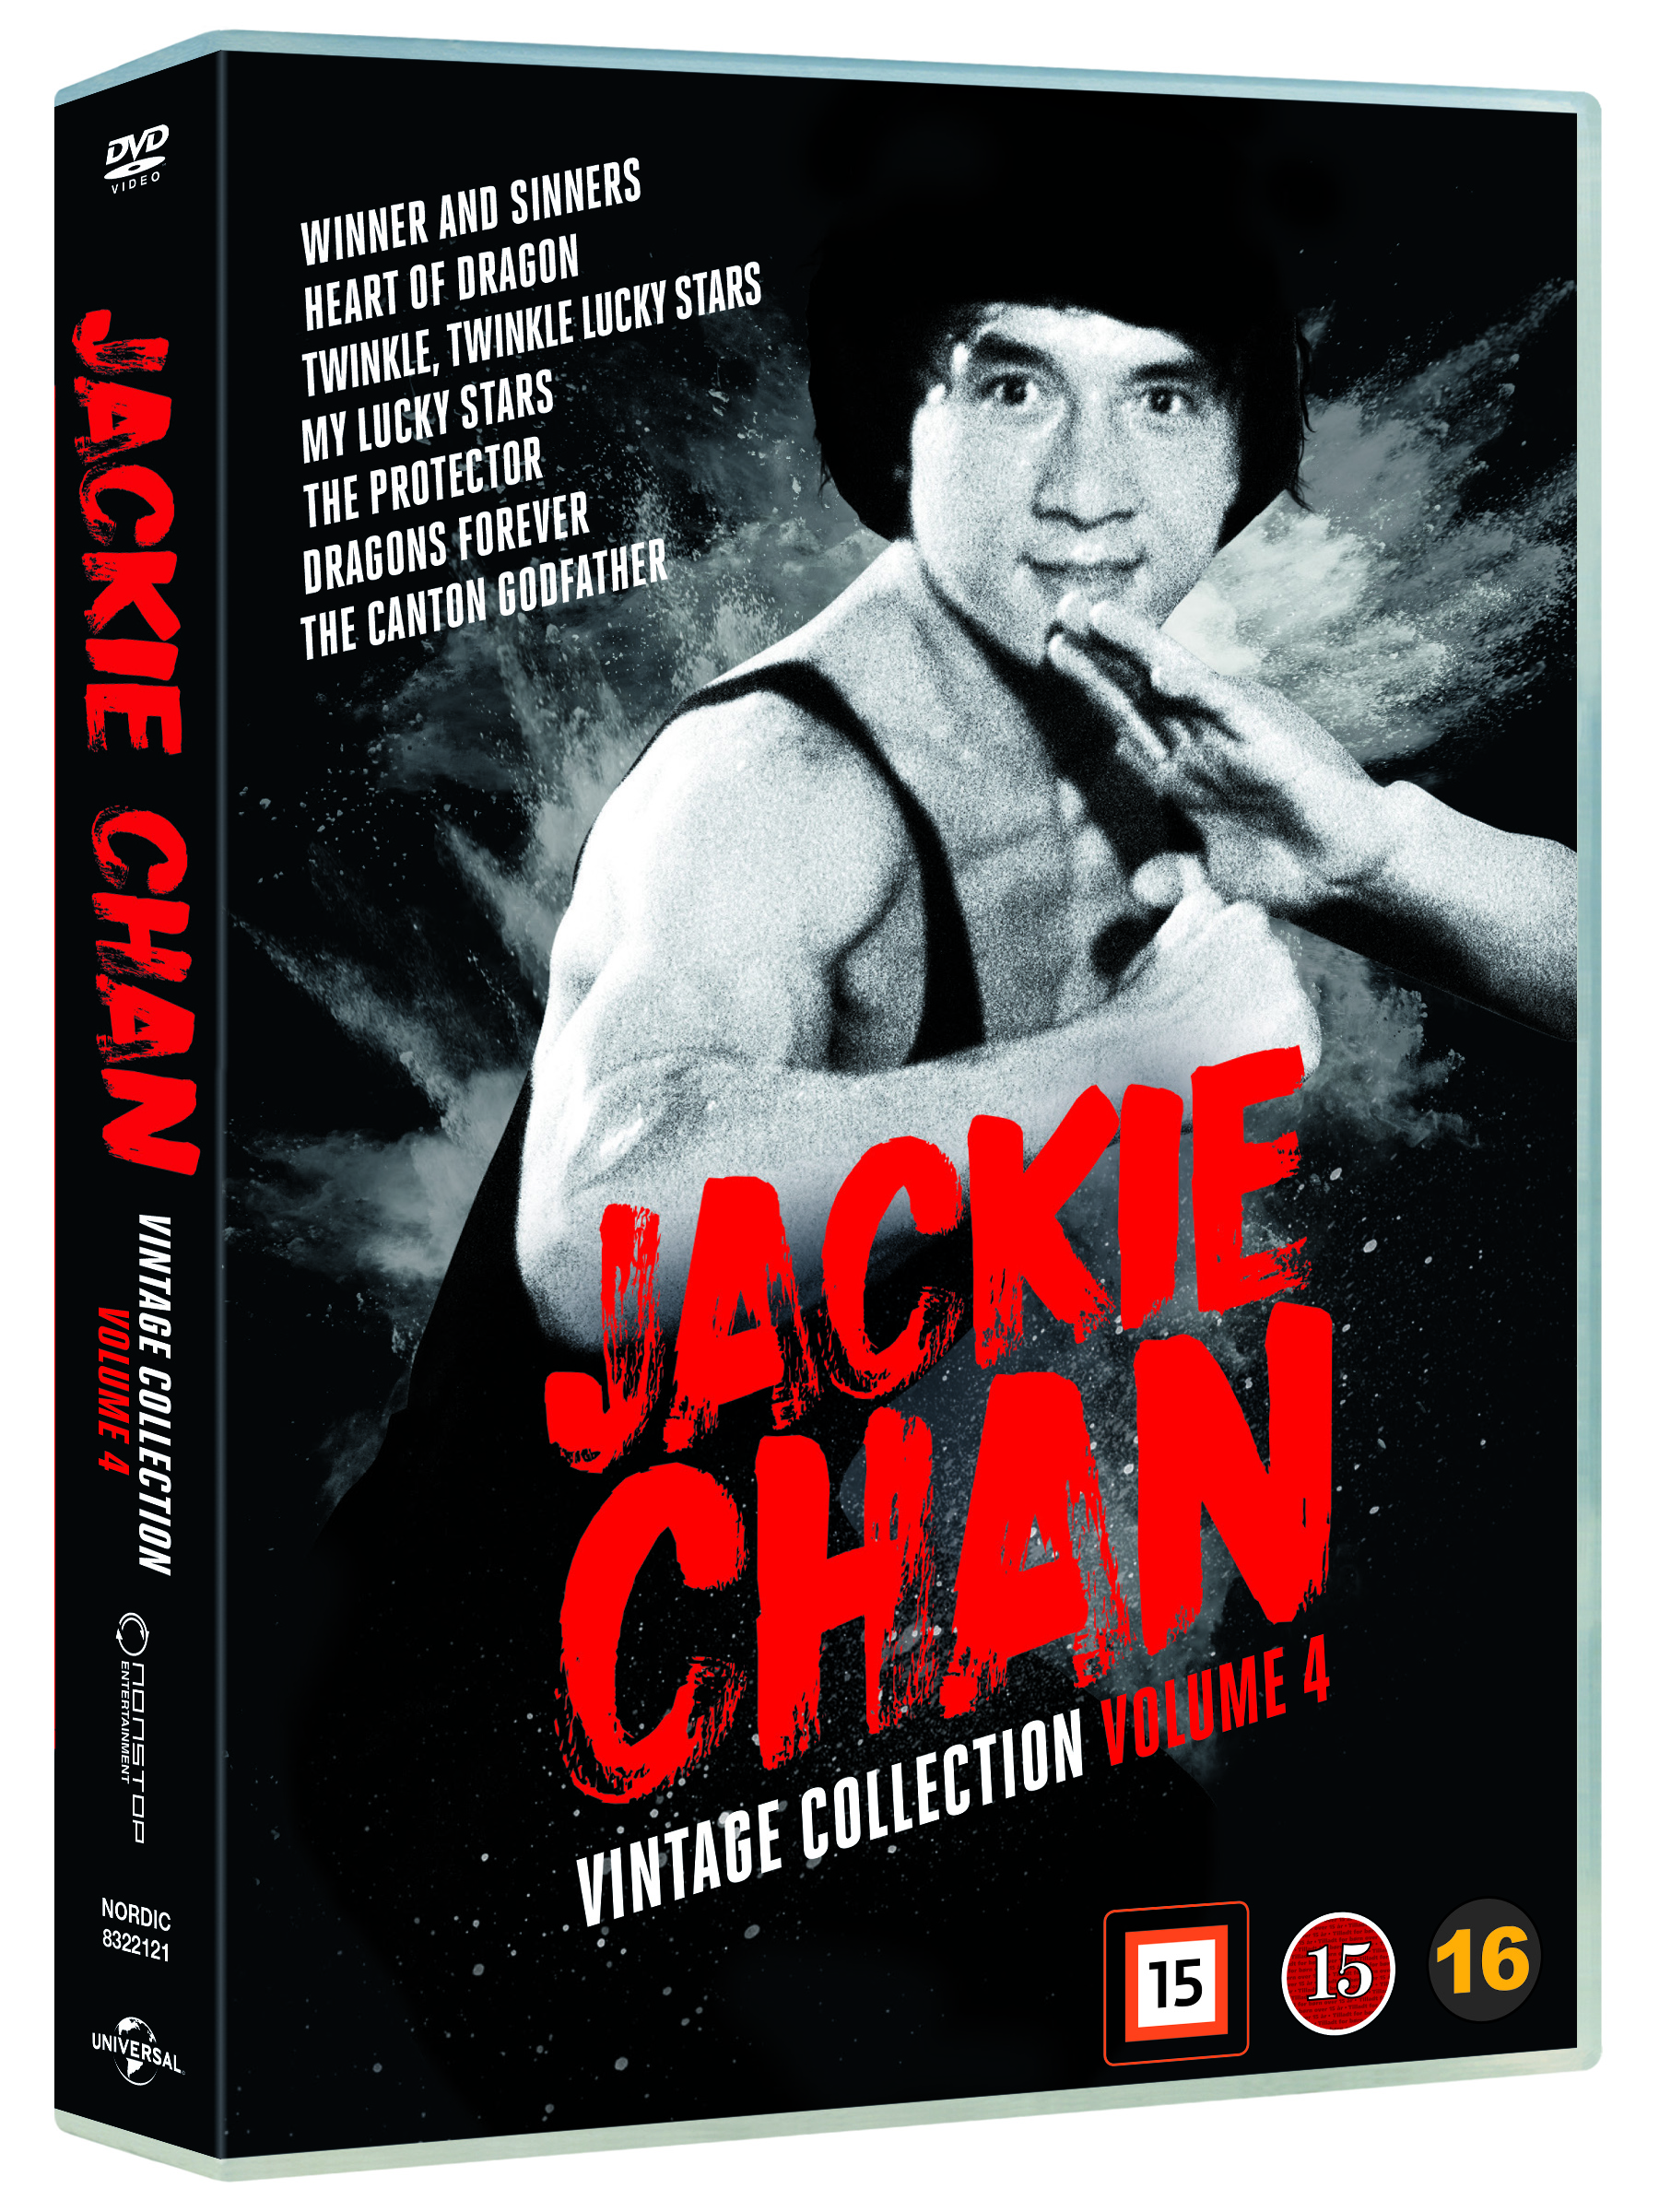 Jackie Chan Vintage Collection 4 - DVD